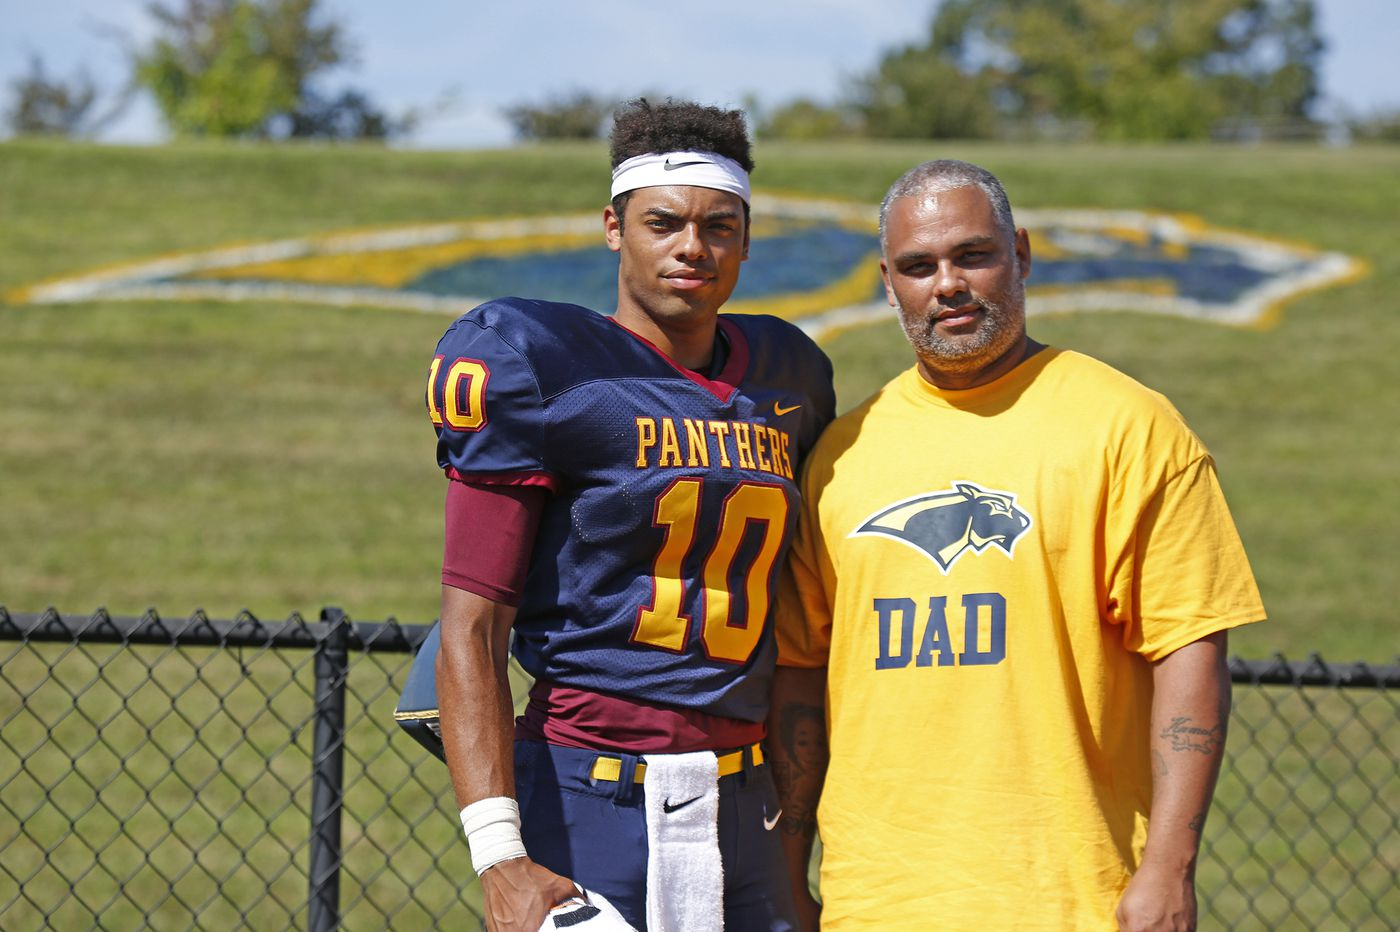 Kamal Gray Jr., son of the Roots star, makes his own name as Pope John Paul II football quarterback